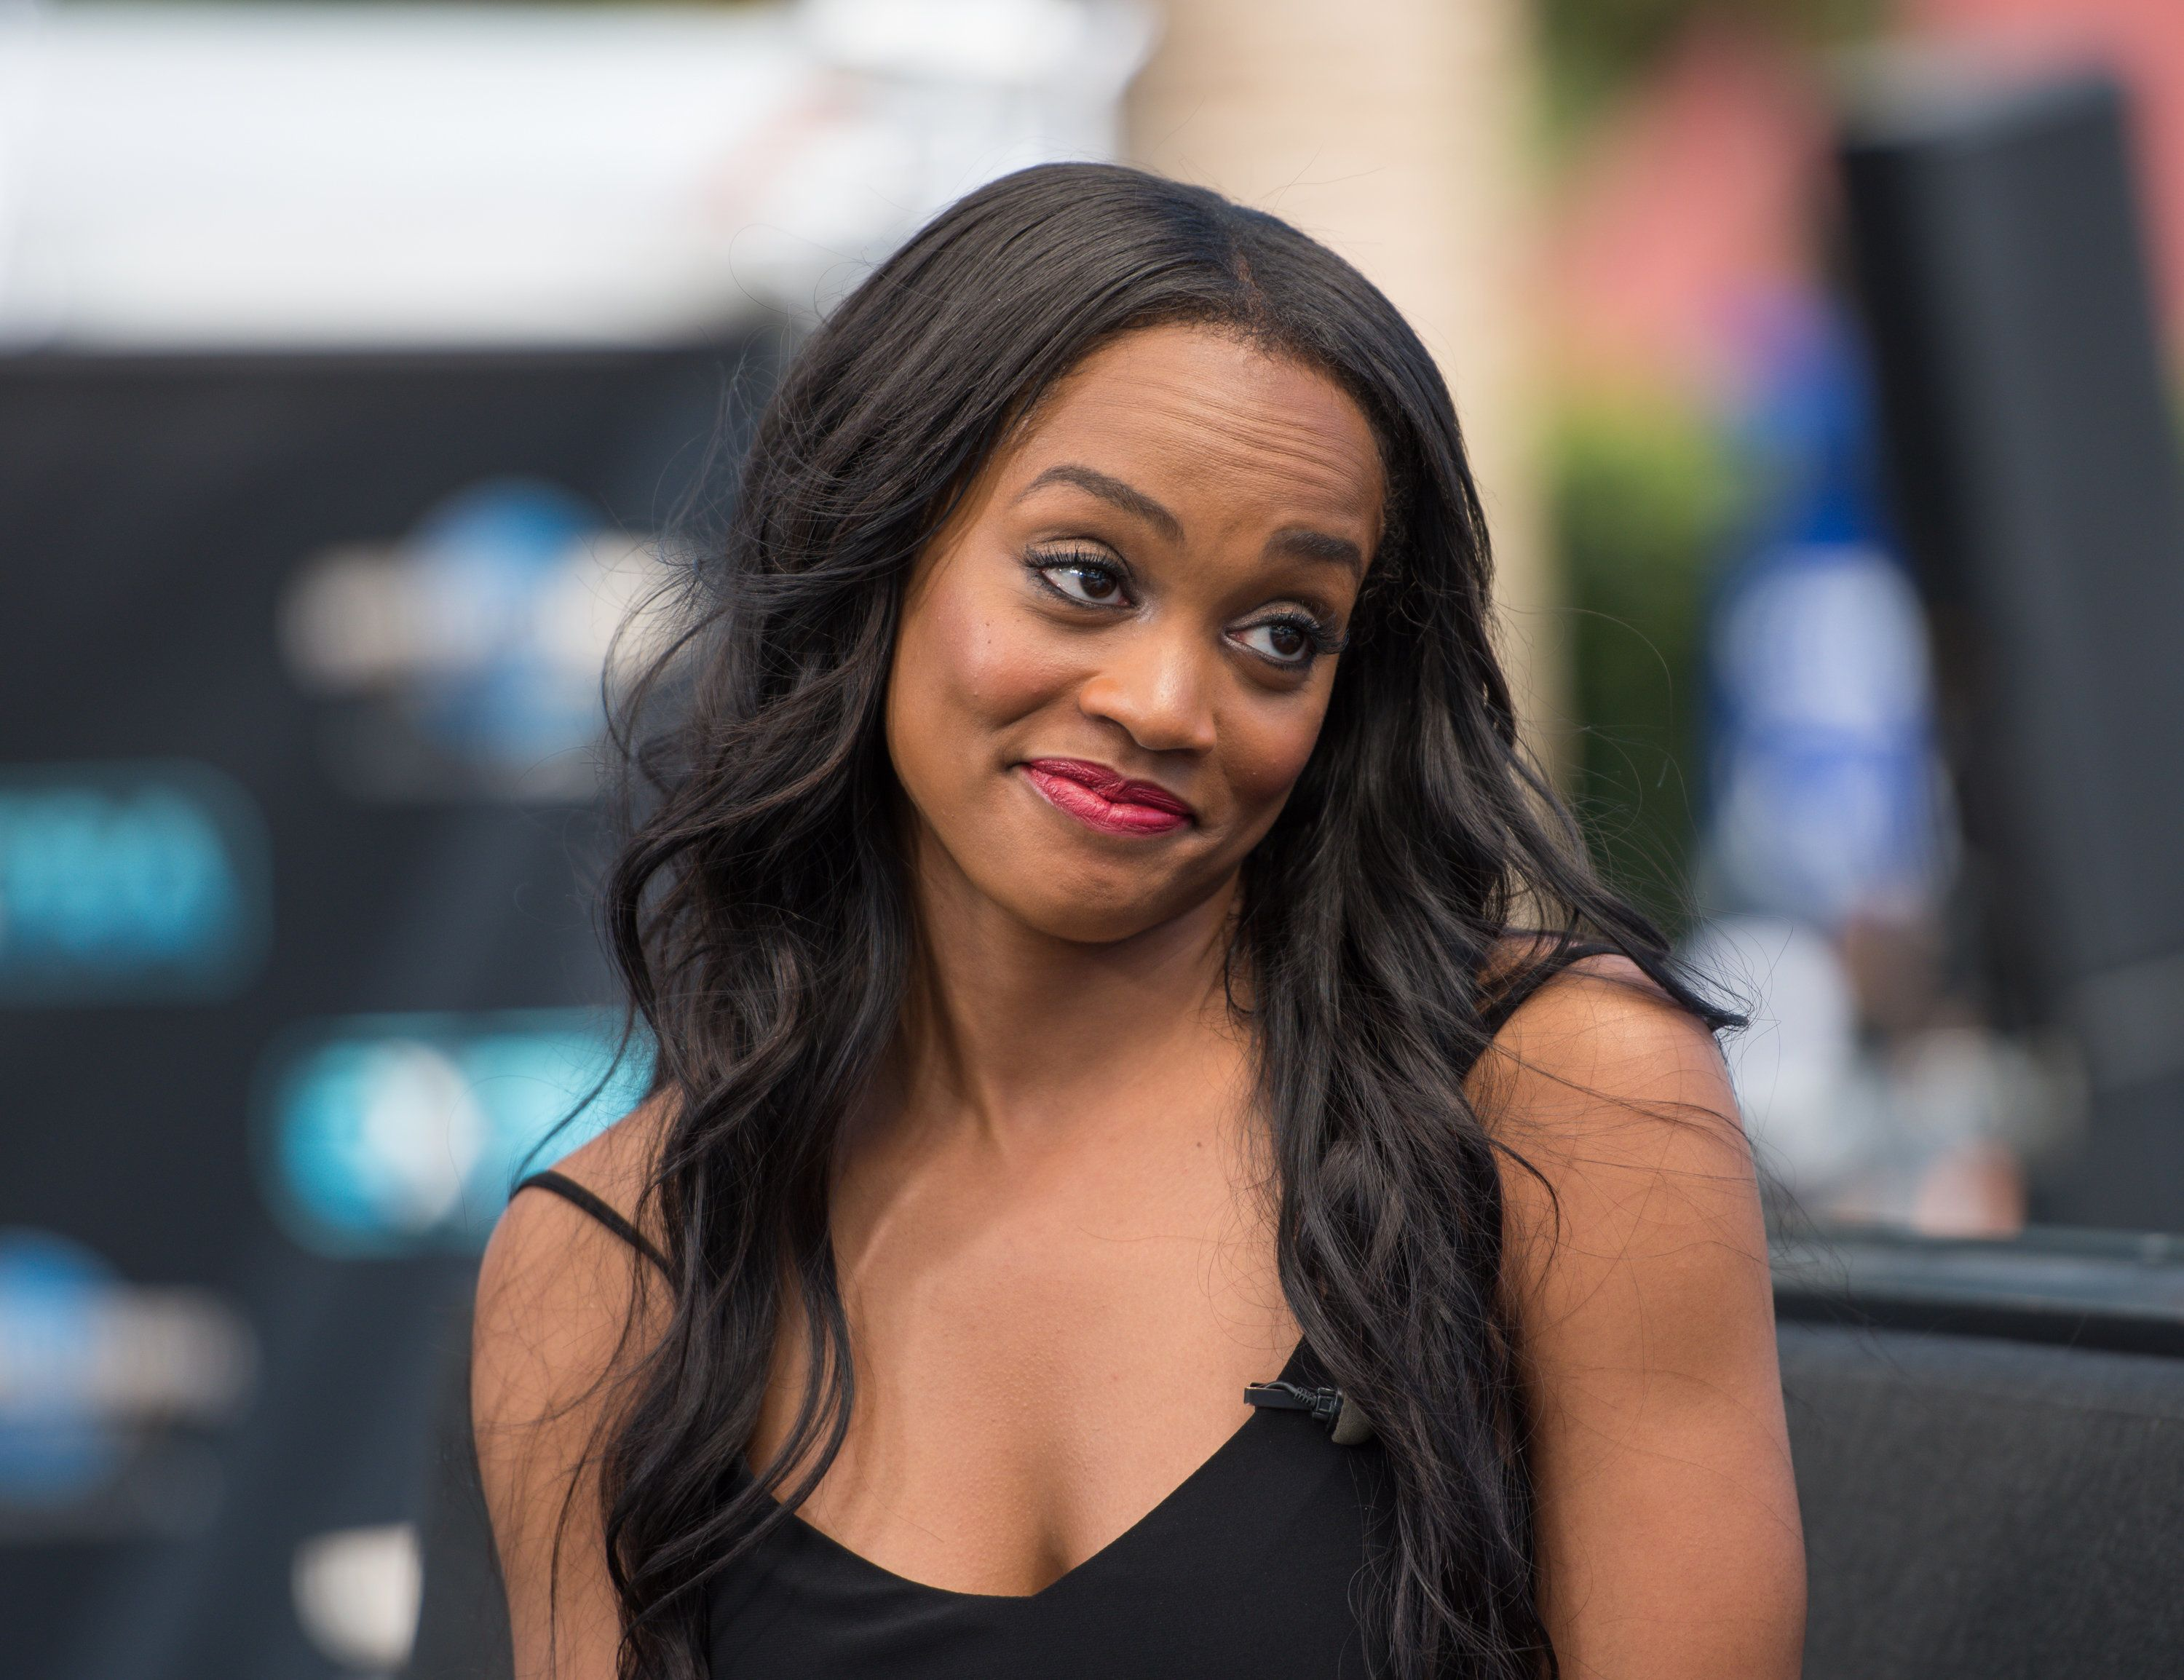 UNIVERSAL CITY, CA - MAY 23:  Rachel Lindsay visits 'Extra' at Universal Studios Hollywood on May 23, 2017 in Universal City, California.  (Photo by Noel Vasquez/Getty Images)